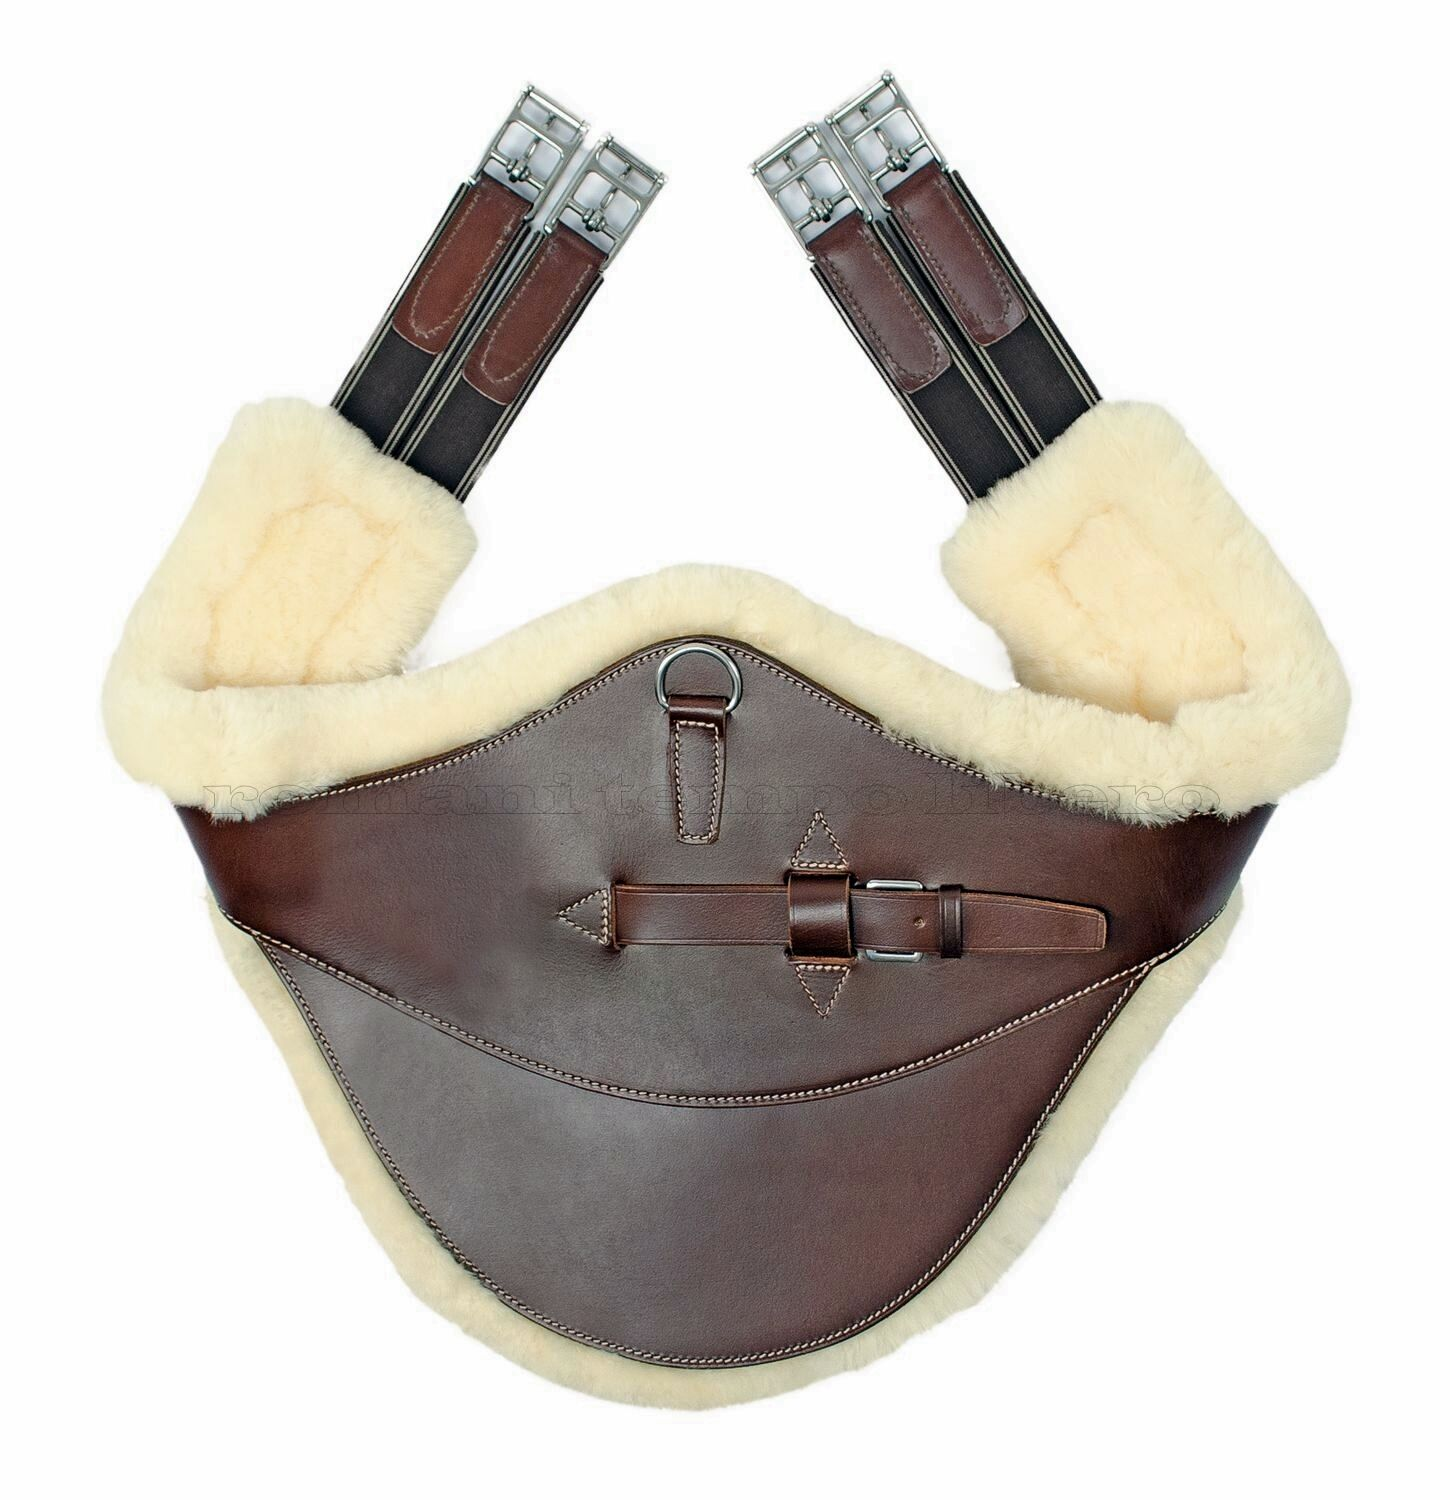 Sottopancia paramponi con montone belly predector girth with removable sheepskin